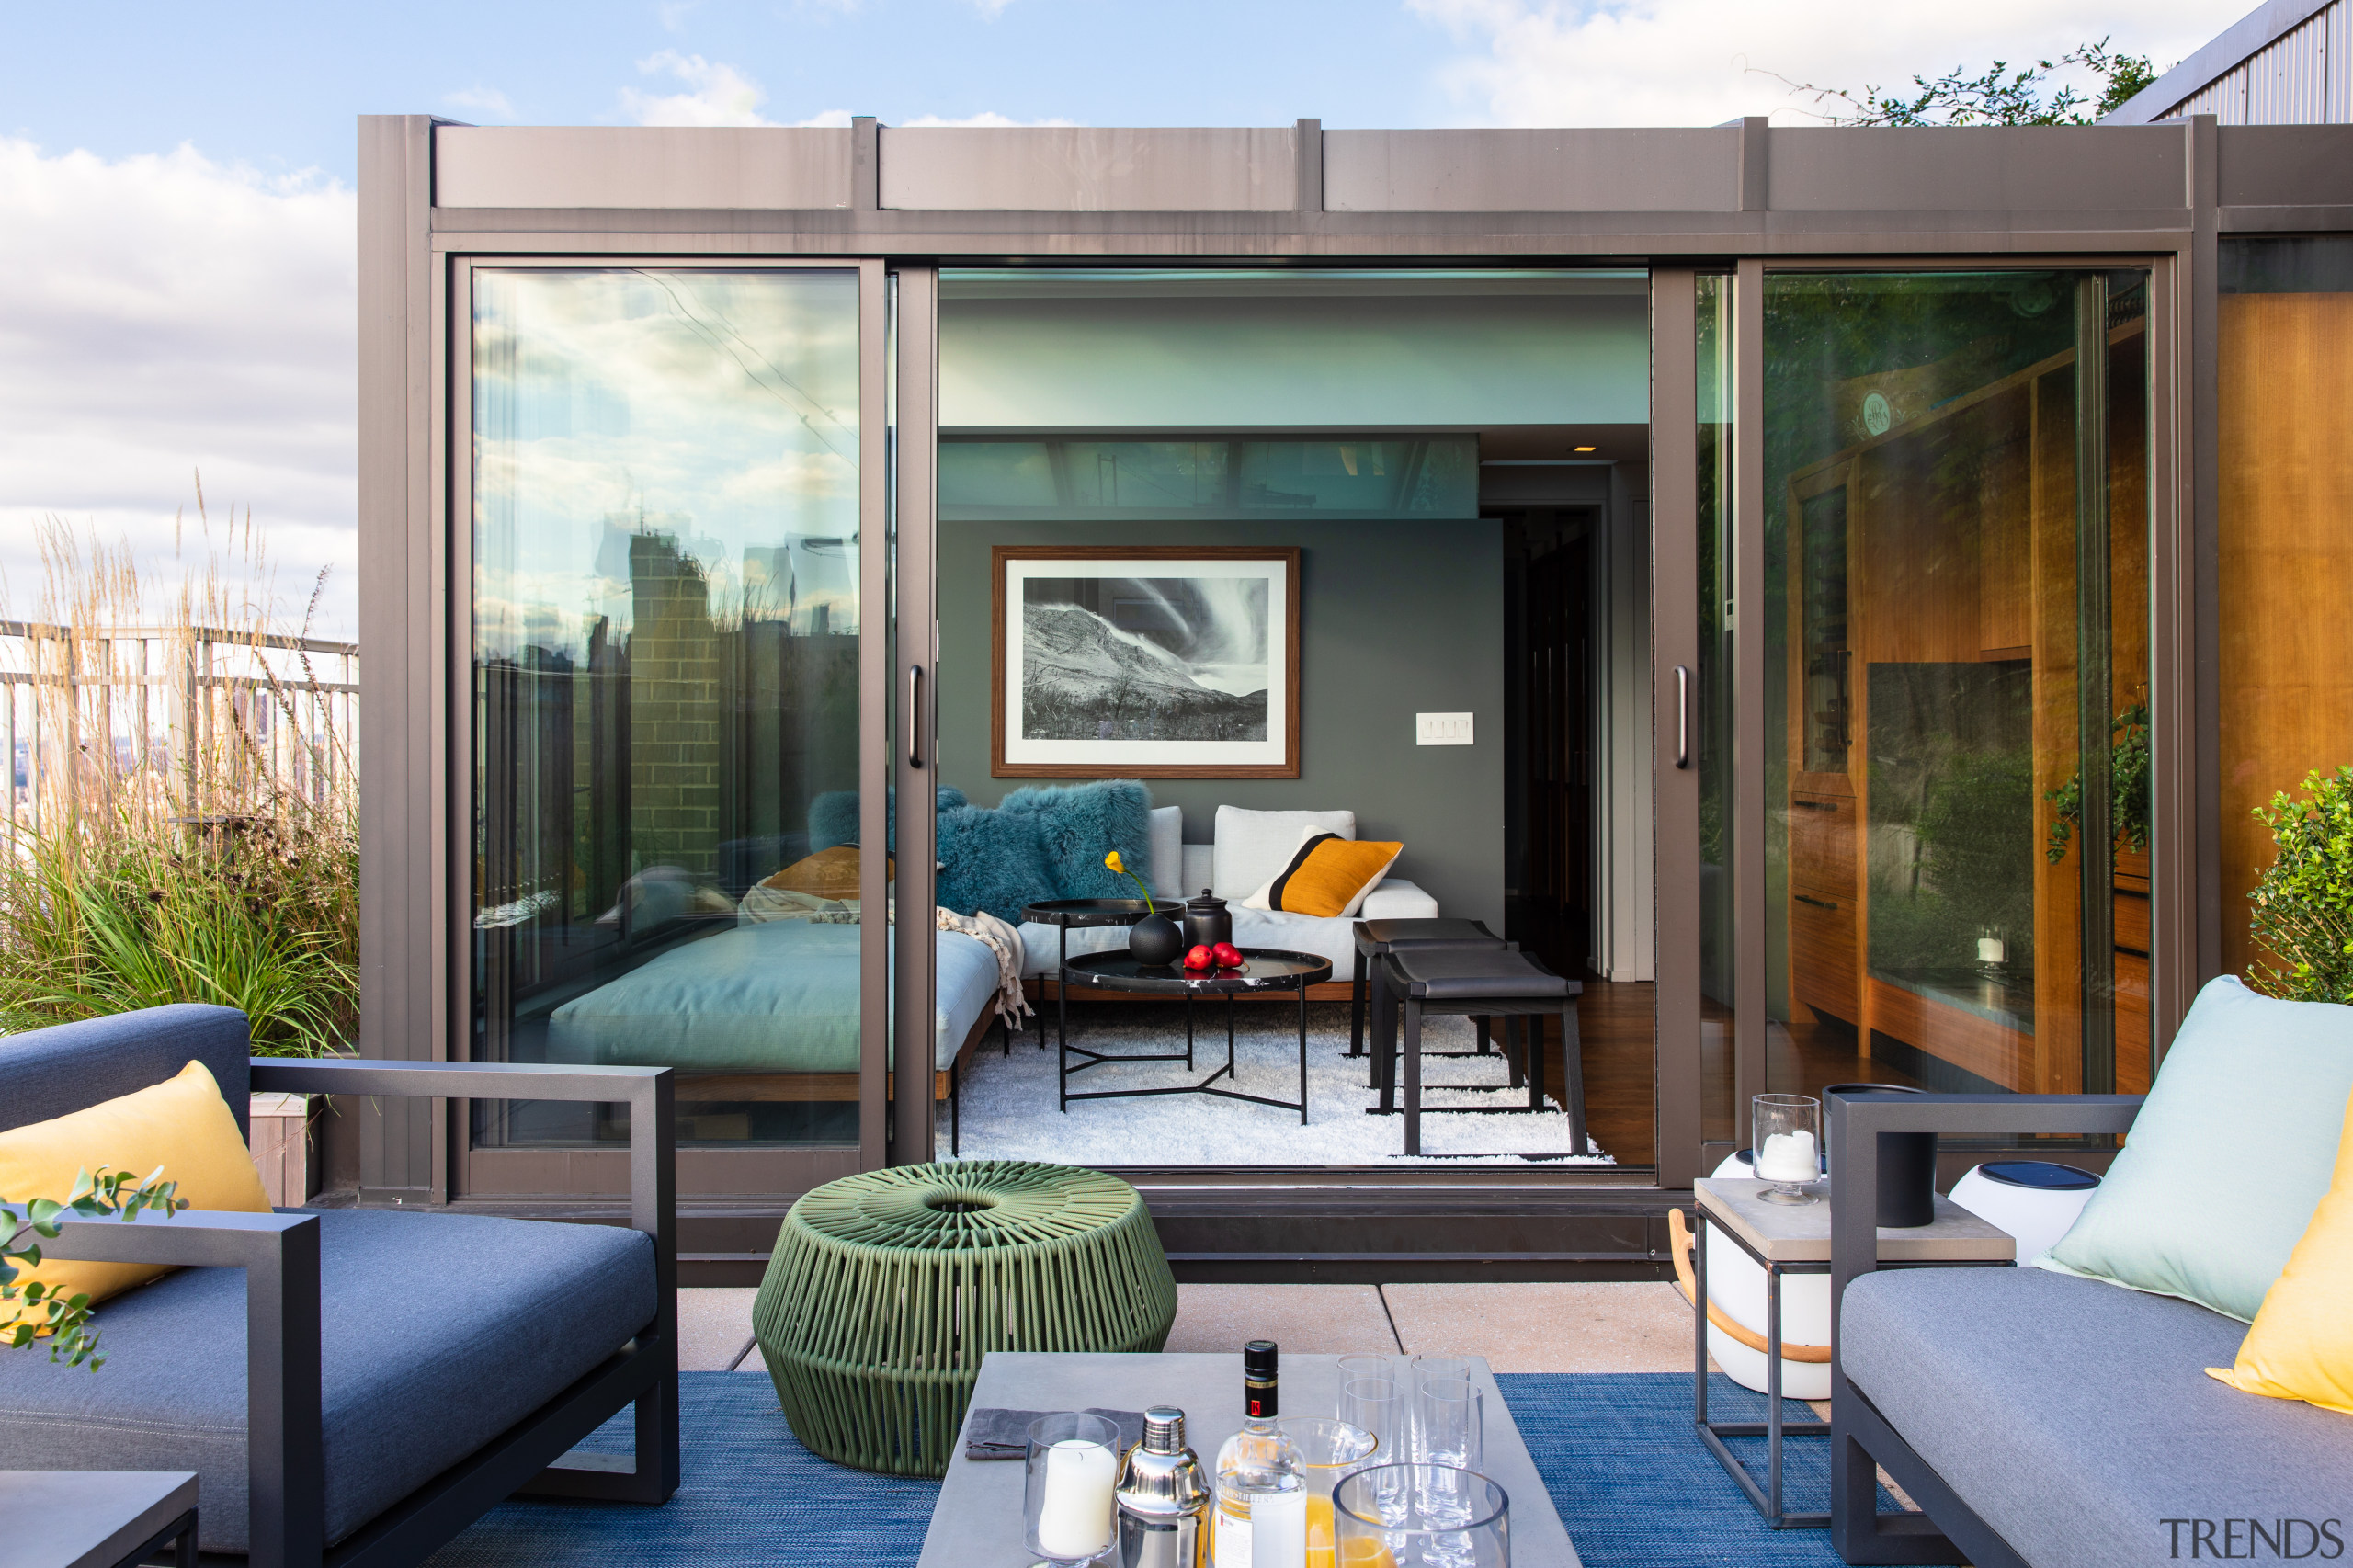 Perched on top of a Manhattan duplex, this architecture, penthouse, outdoor deck, outdoor furniture, home, interior design, couch, suite, table, Andrew Wilkinson